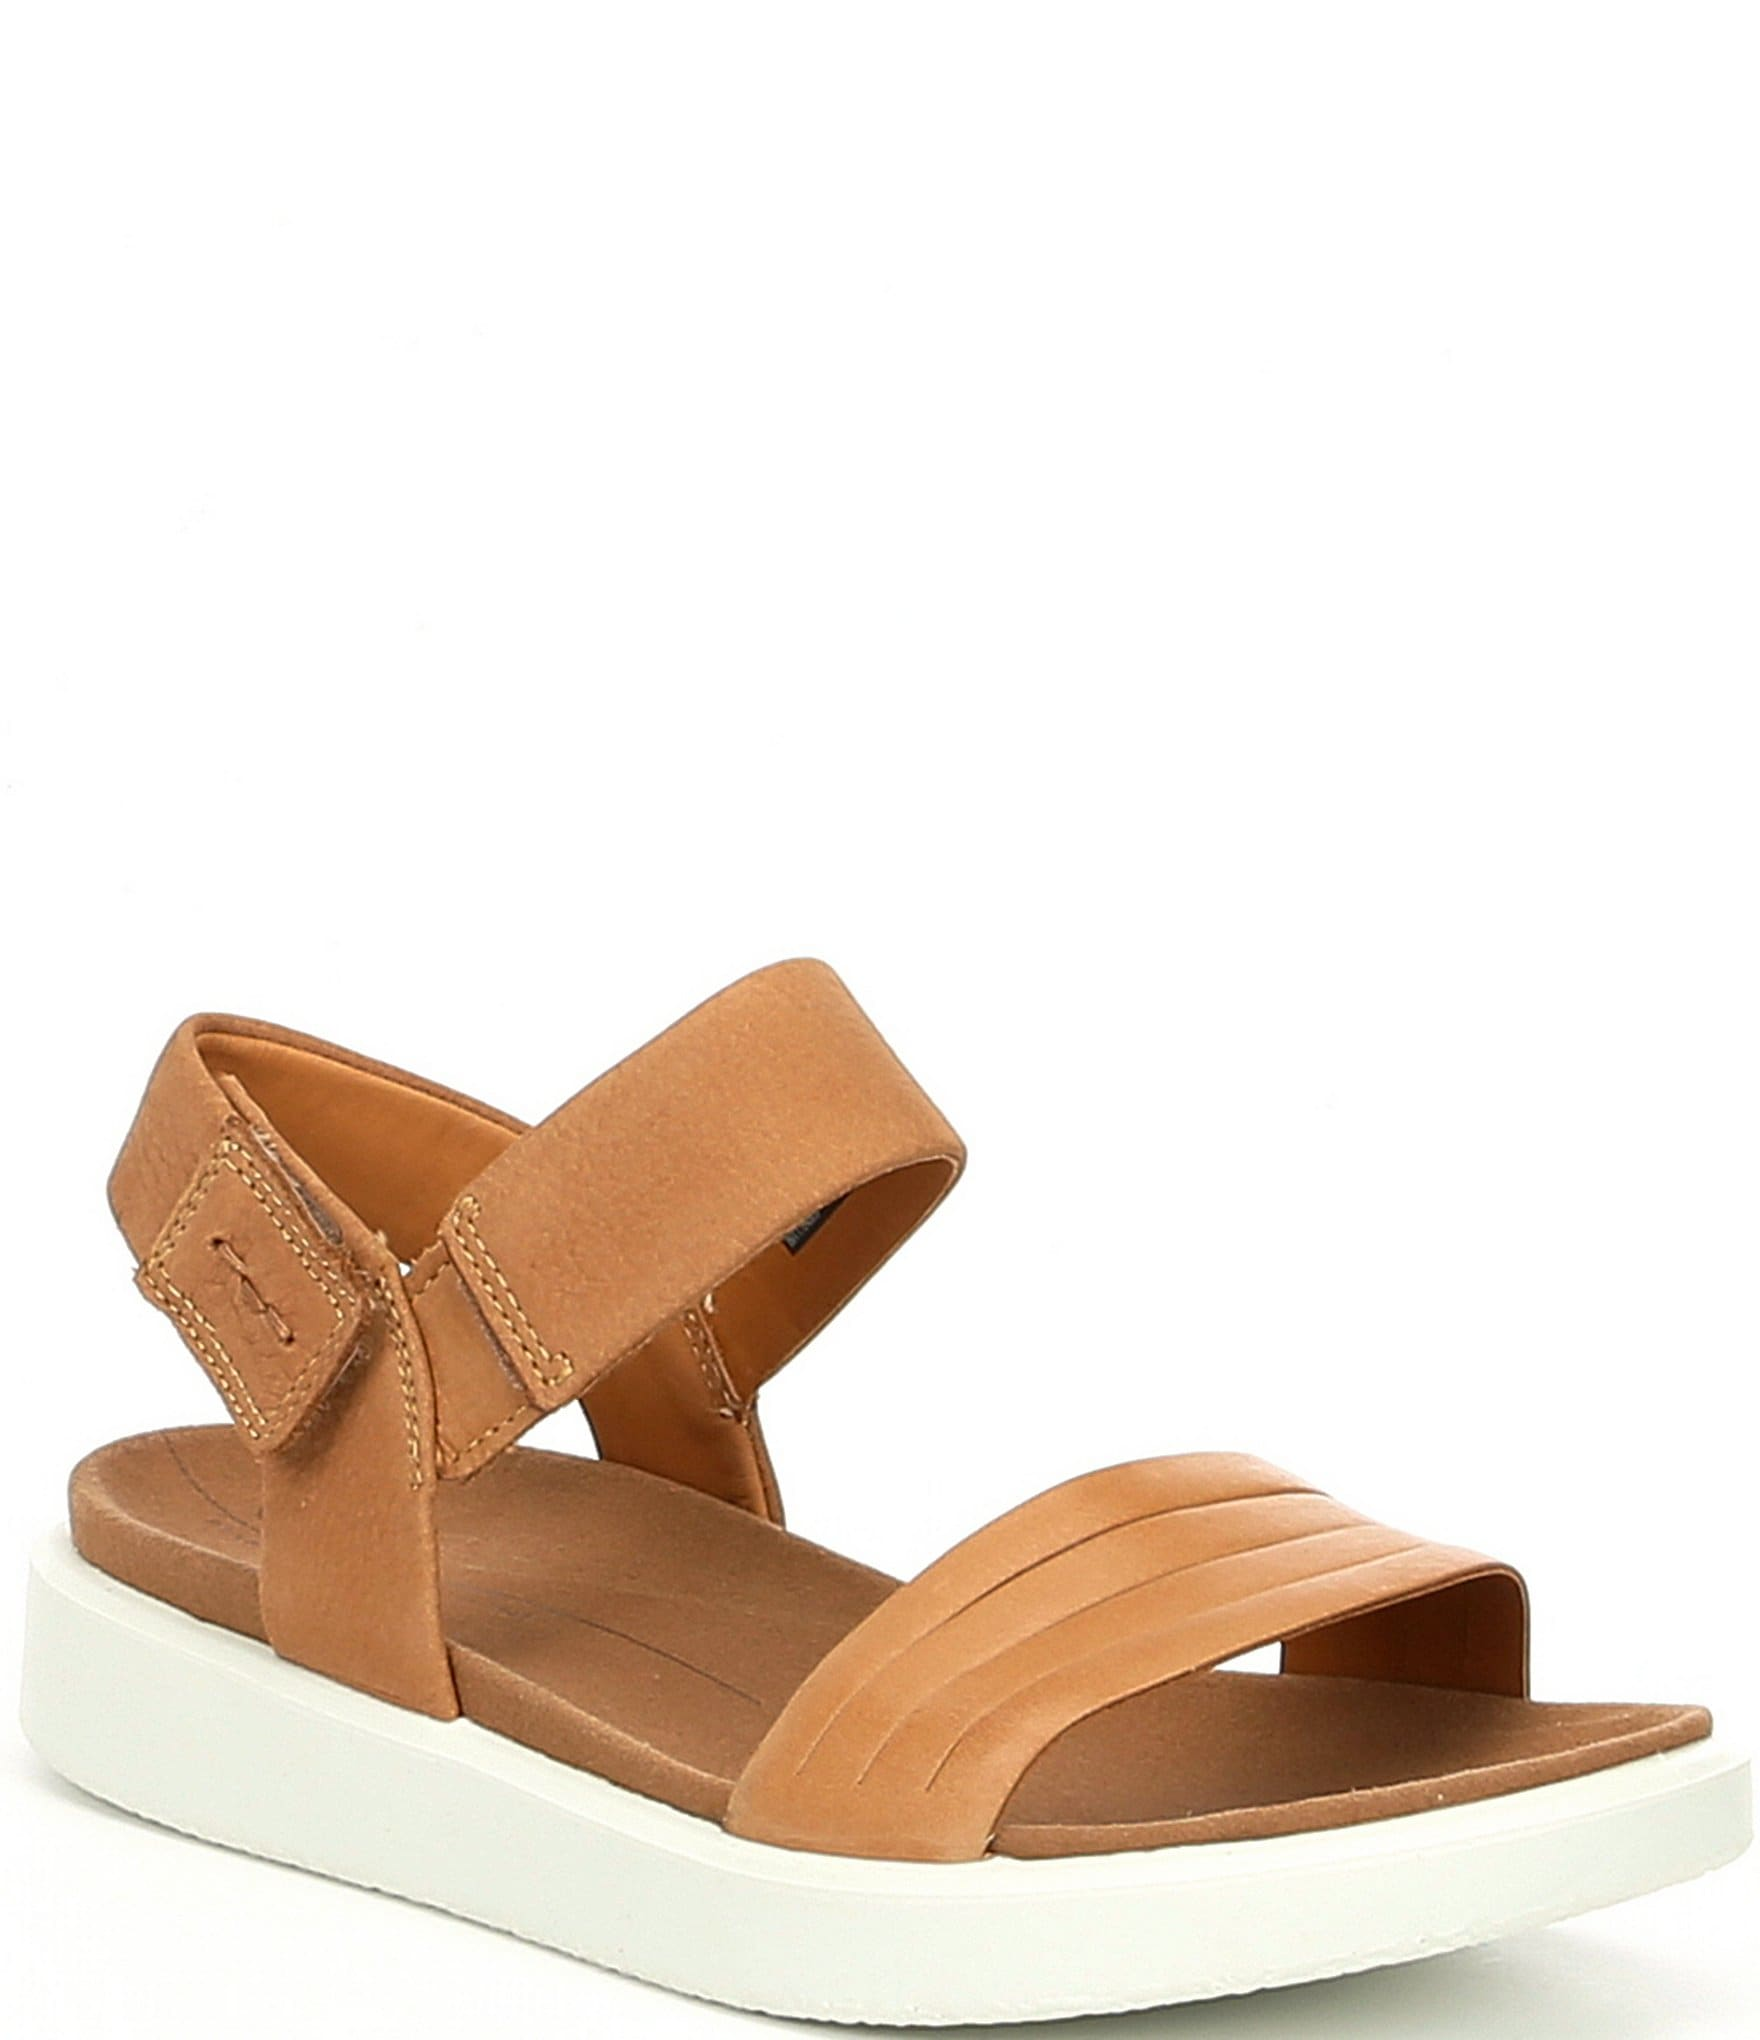 Ecco Flowt Strap Ecco Leather Leather Ecco Leather Flowt Strap Sandals Flowt Strap Sandals 3Rj5ALcqS4